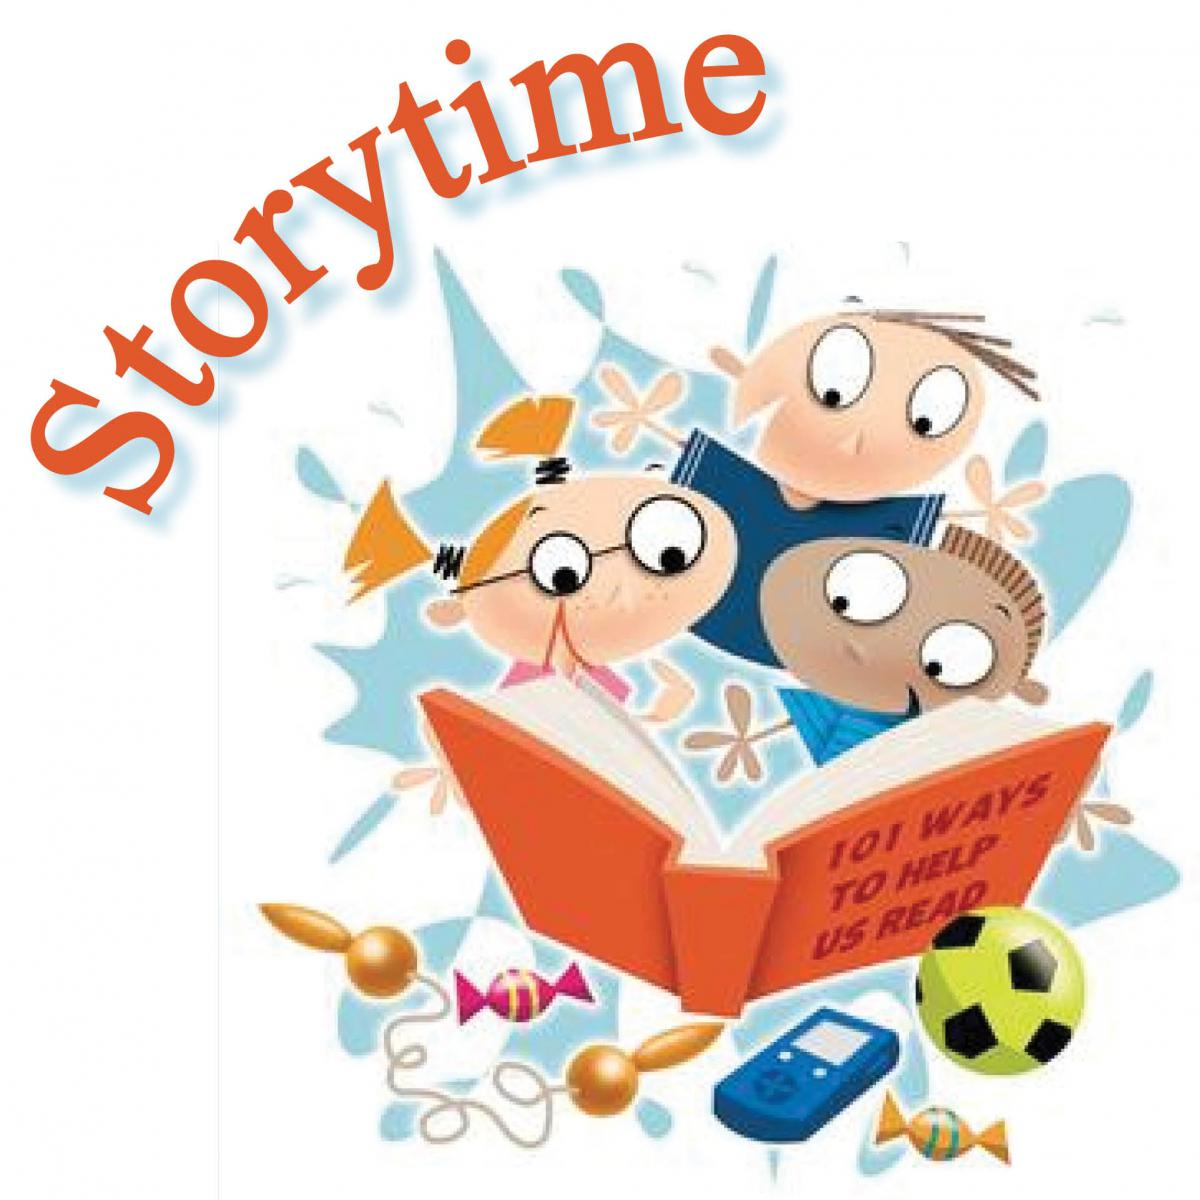 Story clipart story hour. Money smart week traverse